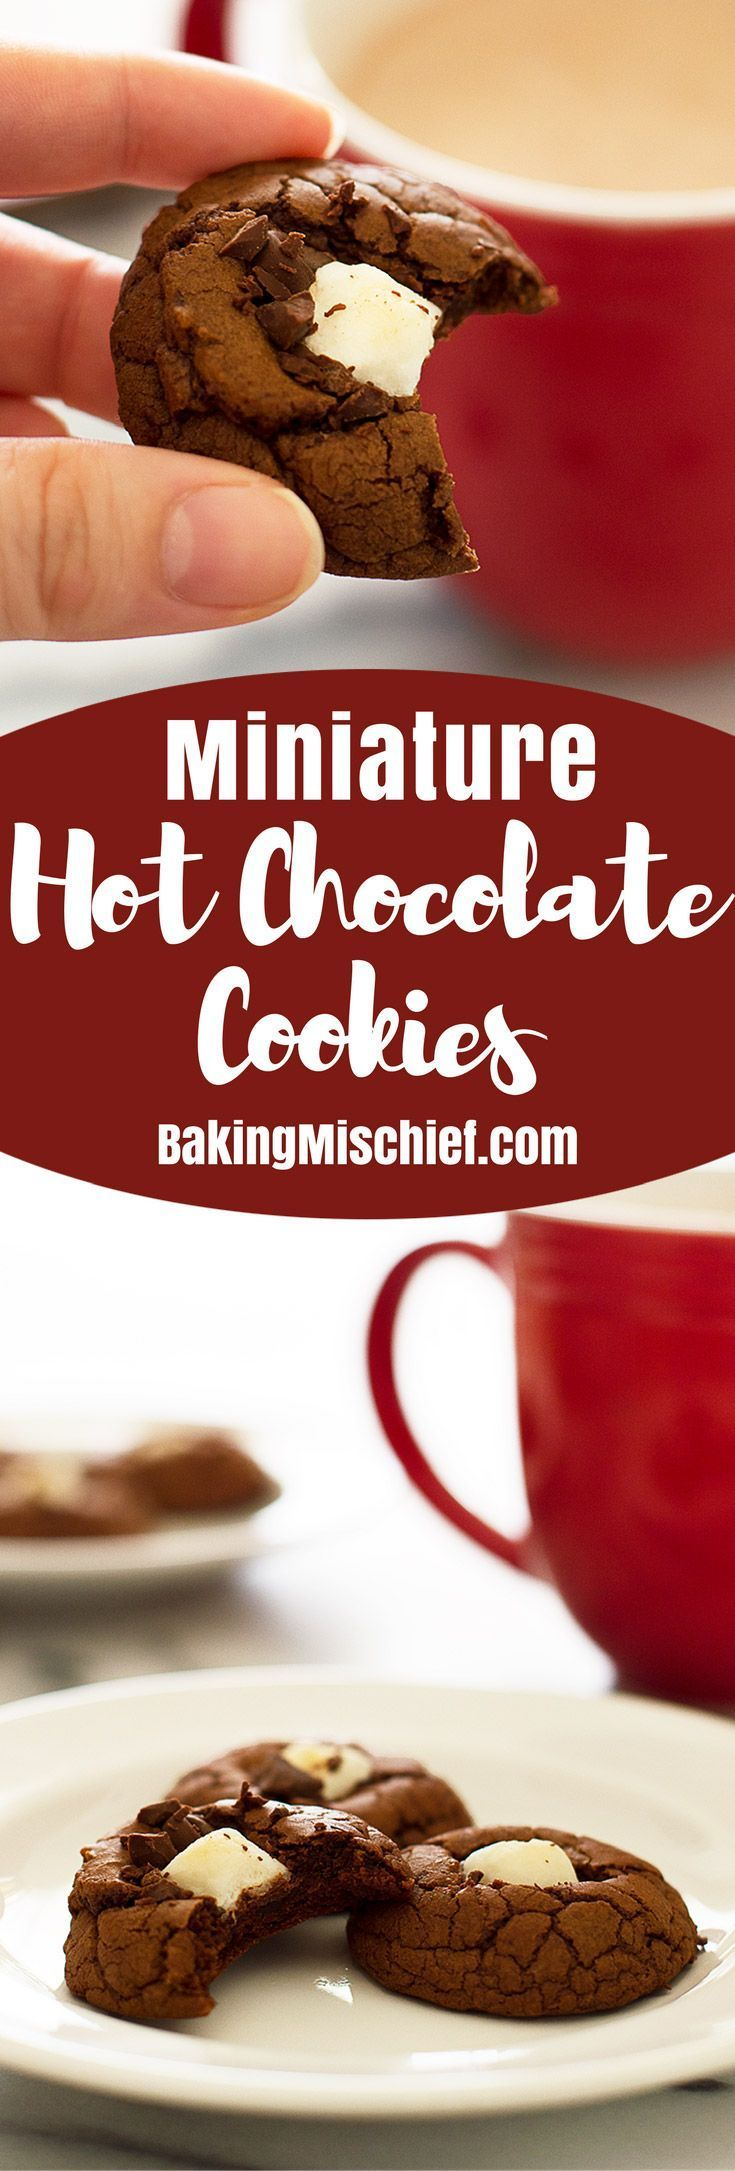 These Miniature Hot Chocolate cookies are rich, chocolatey, and adorable! Recipe includes nutritional information. From http://BakingMischief.com